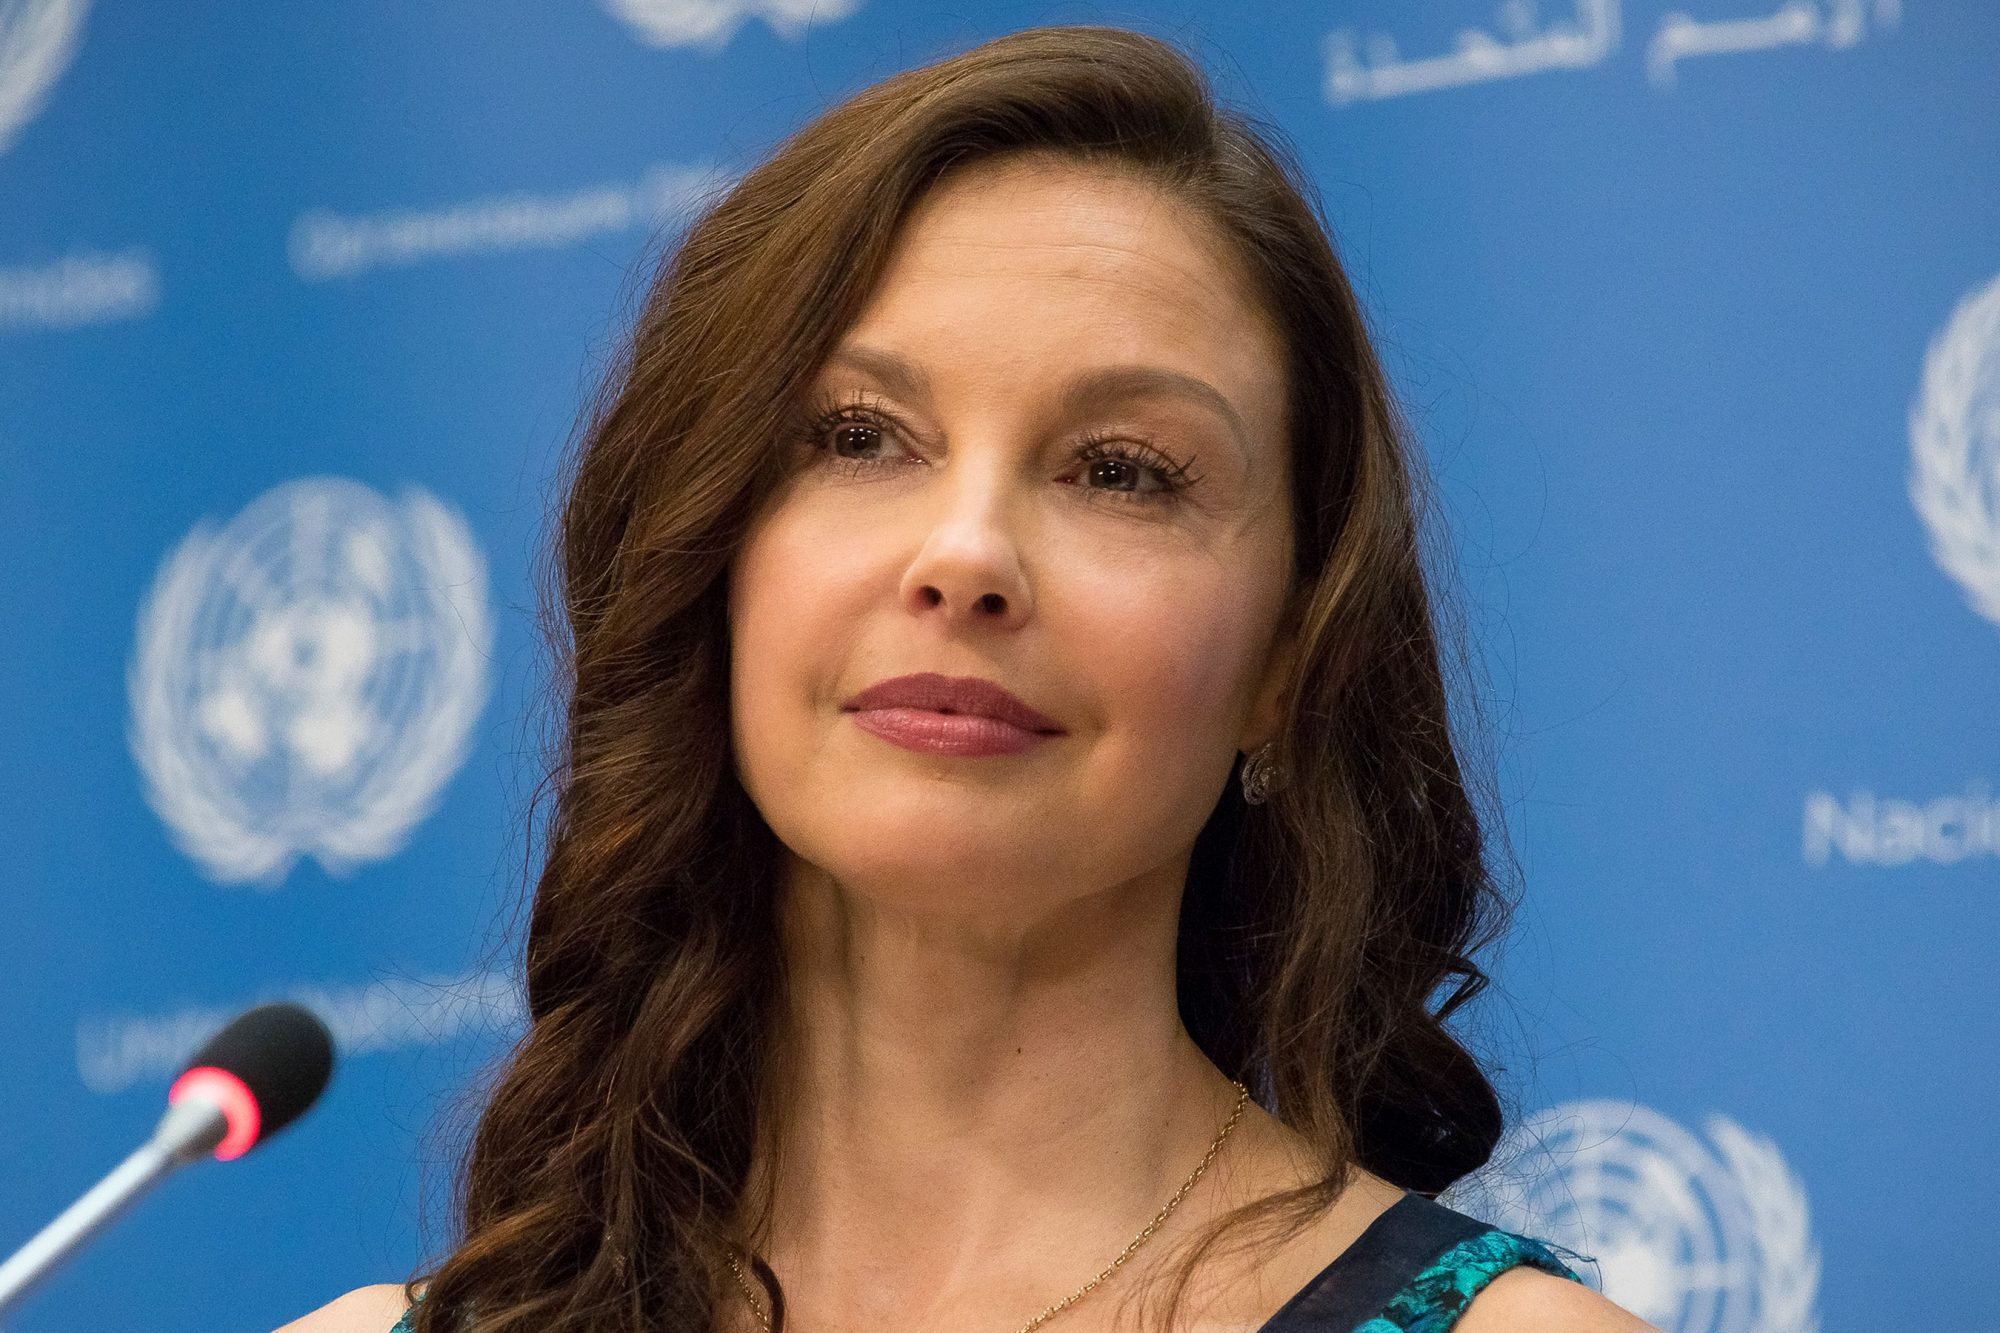 Ashley Judd speaks with the press. Ashley Judd and United